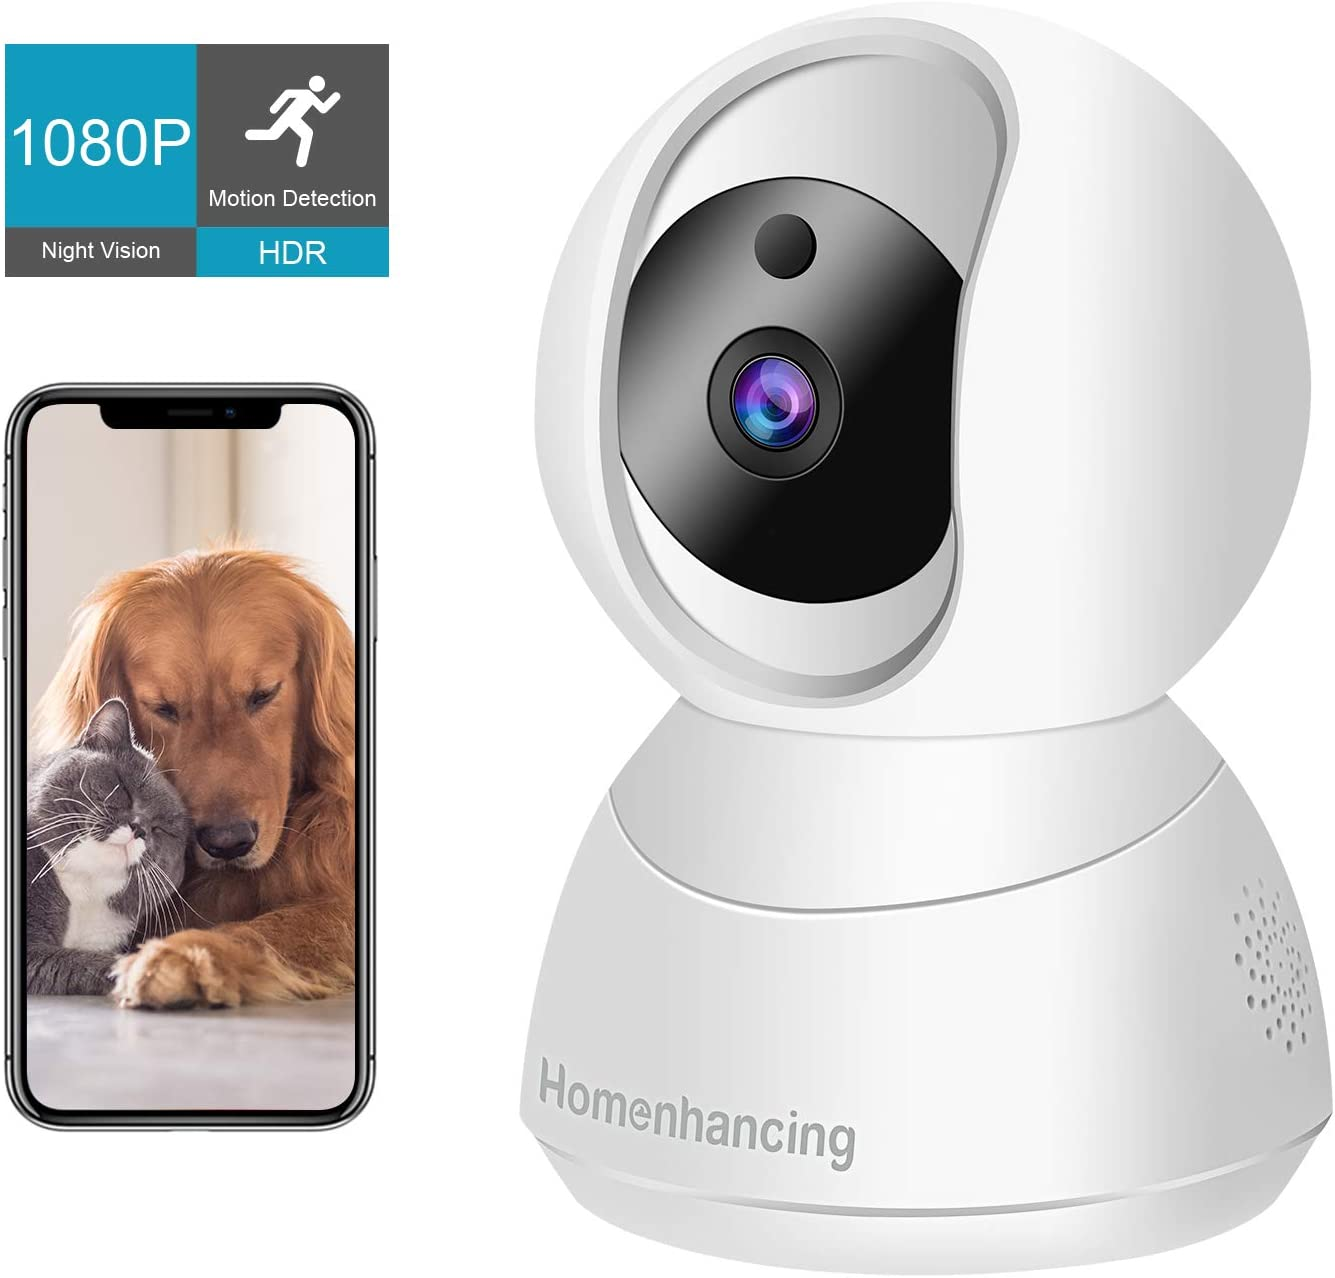 Wireless Pet Camera 1080P FHD, WiFi Dog Camera and Two Way Audio, Indoor Cat Camera and Motion Tracking Detection, Night Vision, IP Camera Pan Tilt Zoom, Cloud Storage Micro SD Card, iOS Android